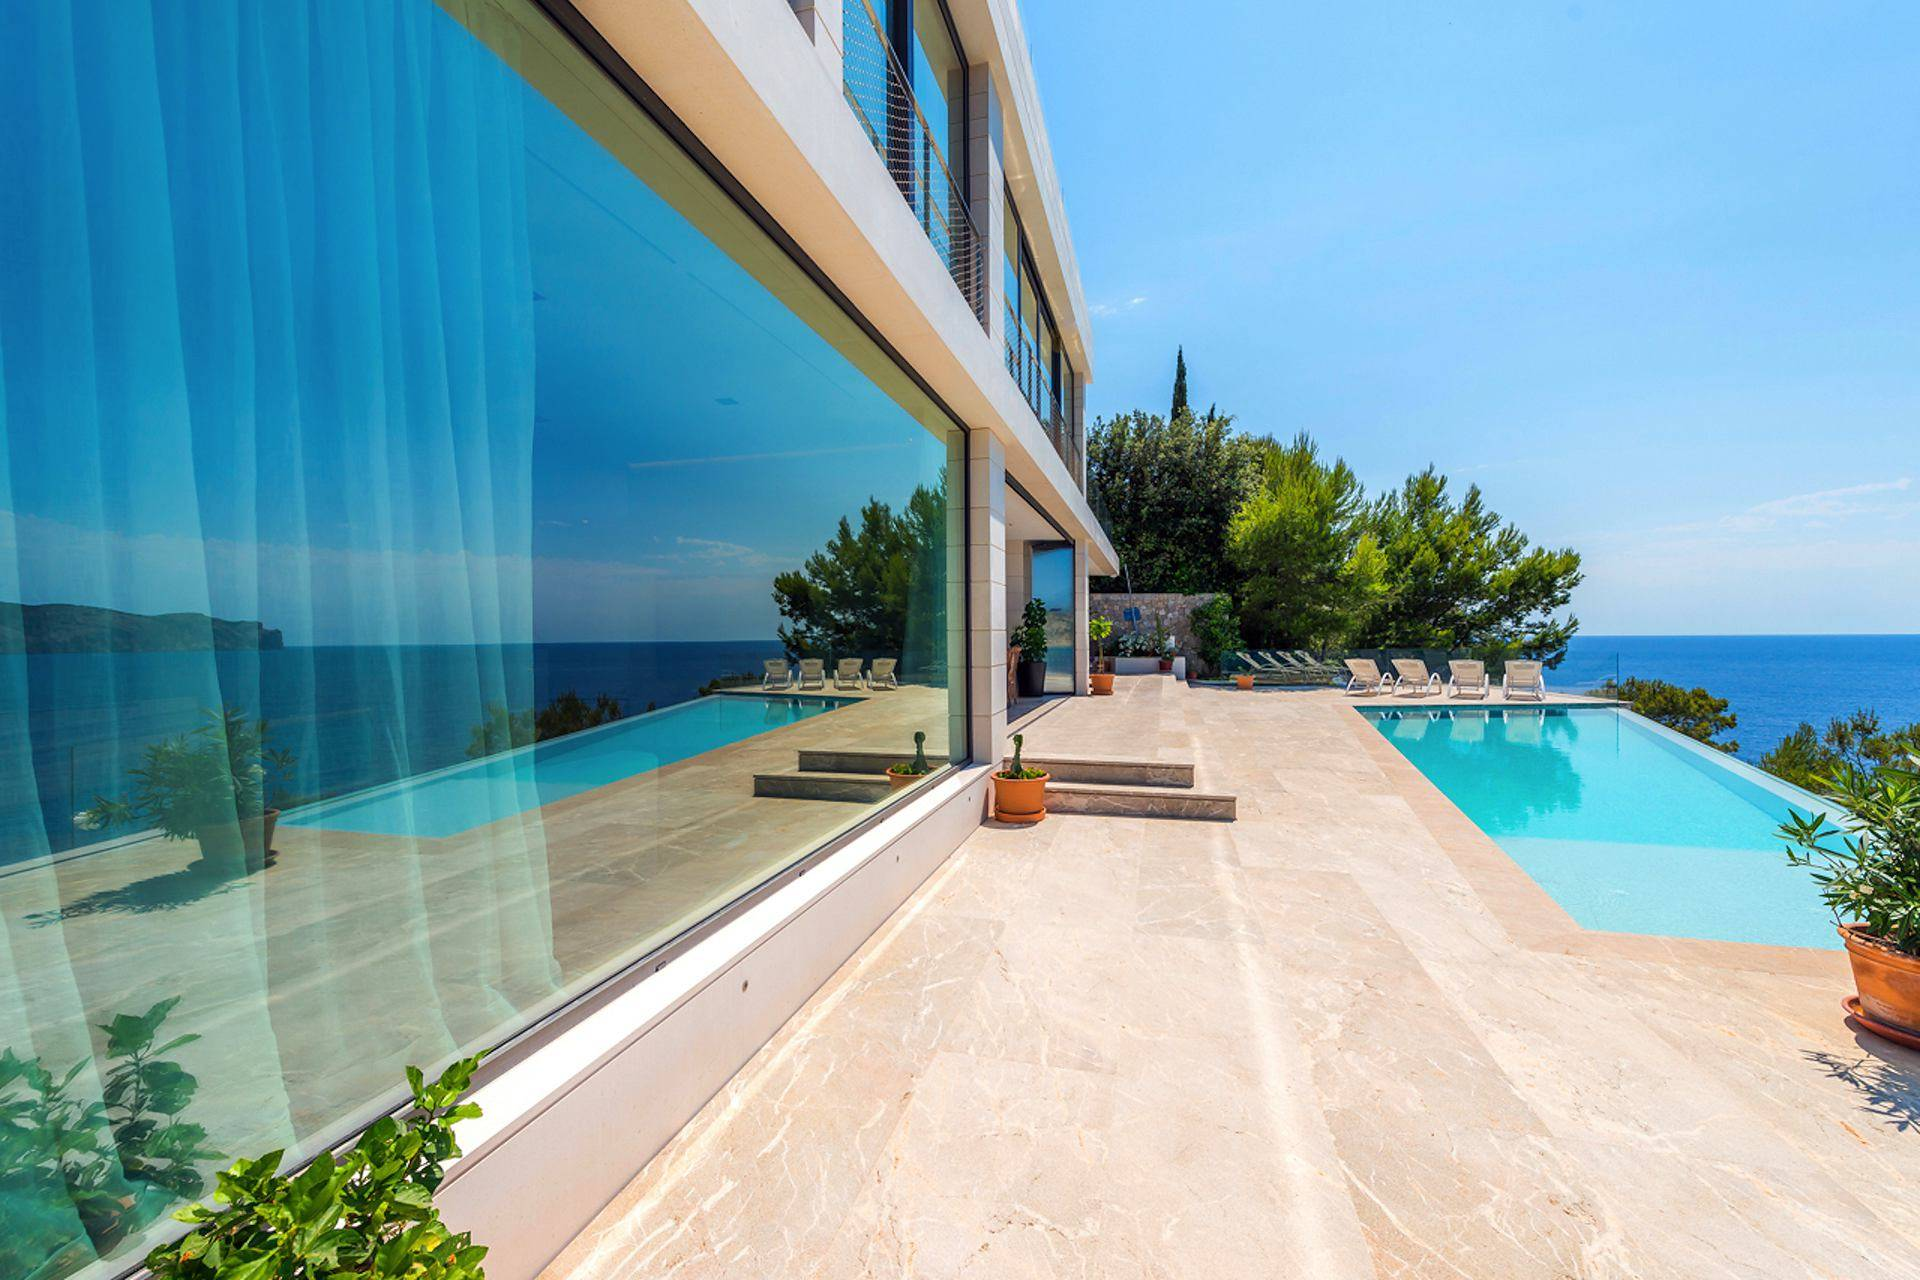 01-269 exclusive Luxury Villa Mallorca Southwest Bild 2